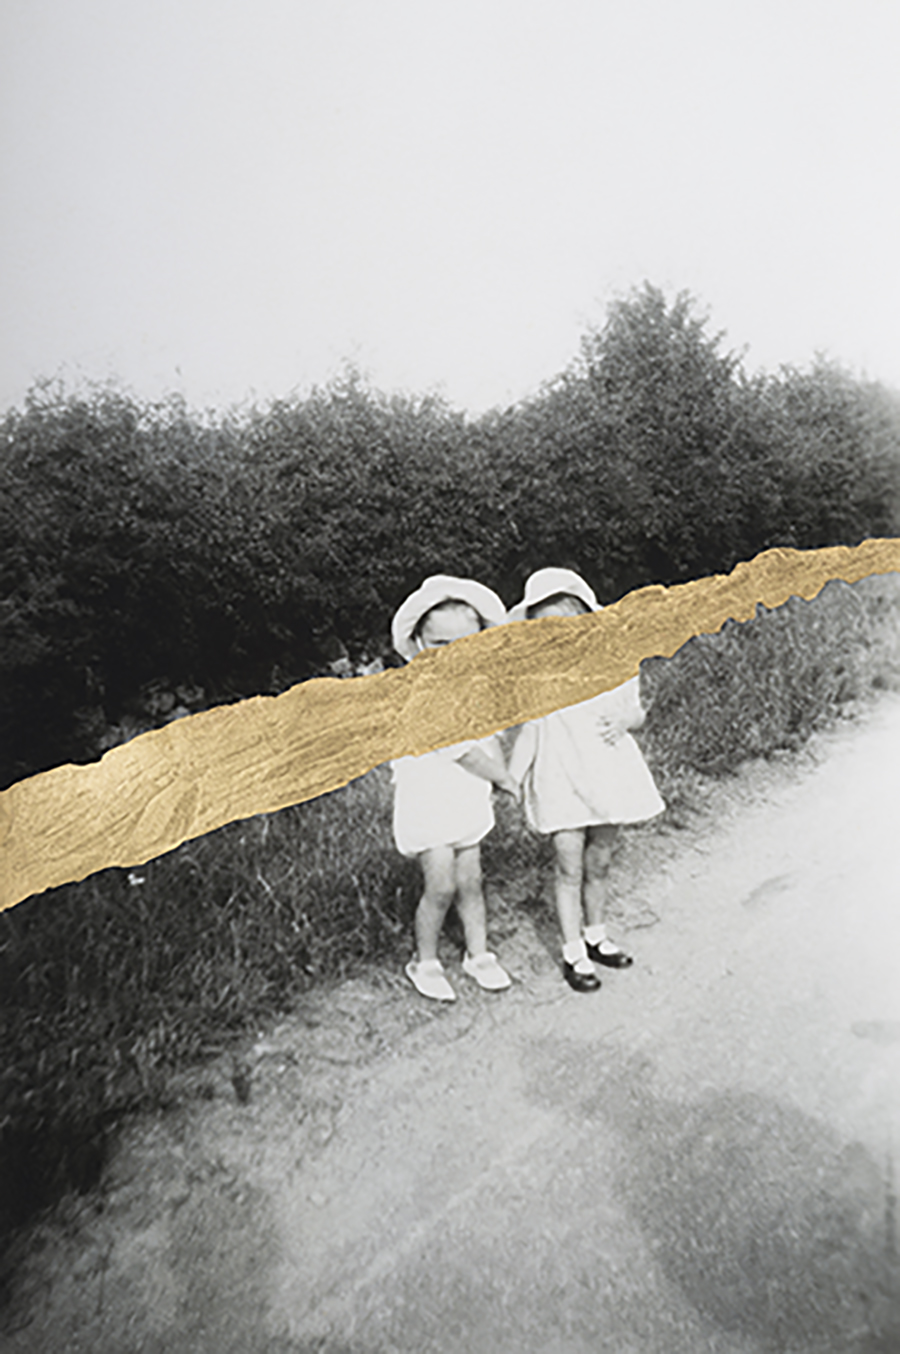 Carolle Bénitah, Petites filles, 2017, Gold leaf on Baryta paper, Archival Pigment Print, 30 x 20 cm, Edition 5, signed & numbered